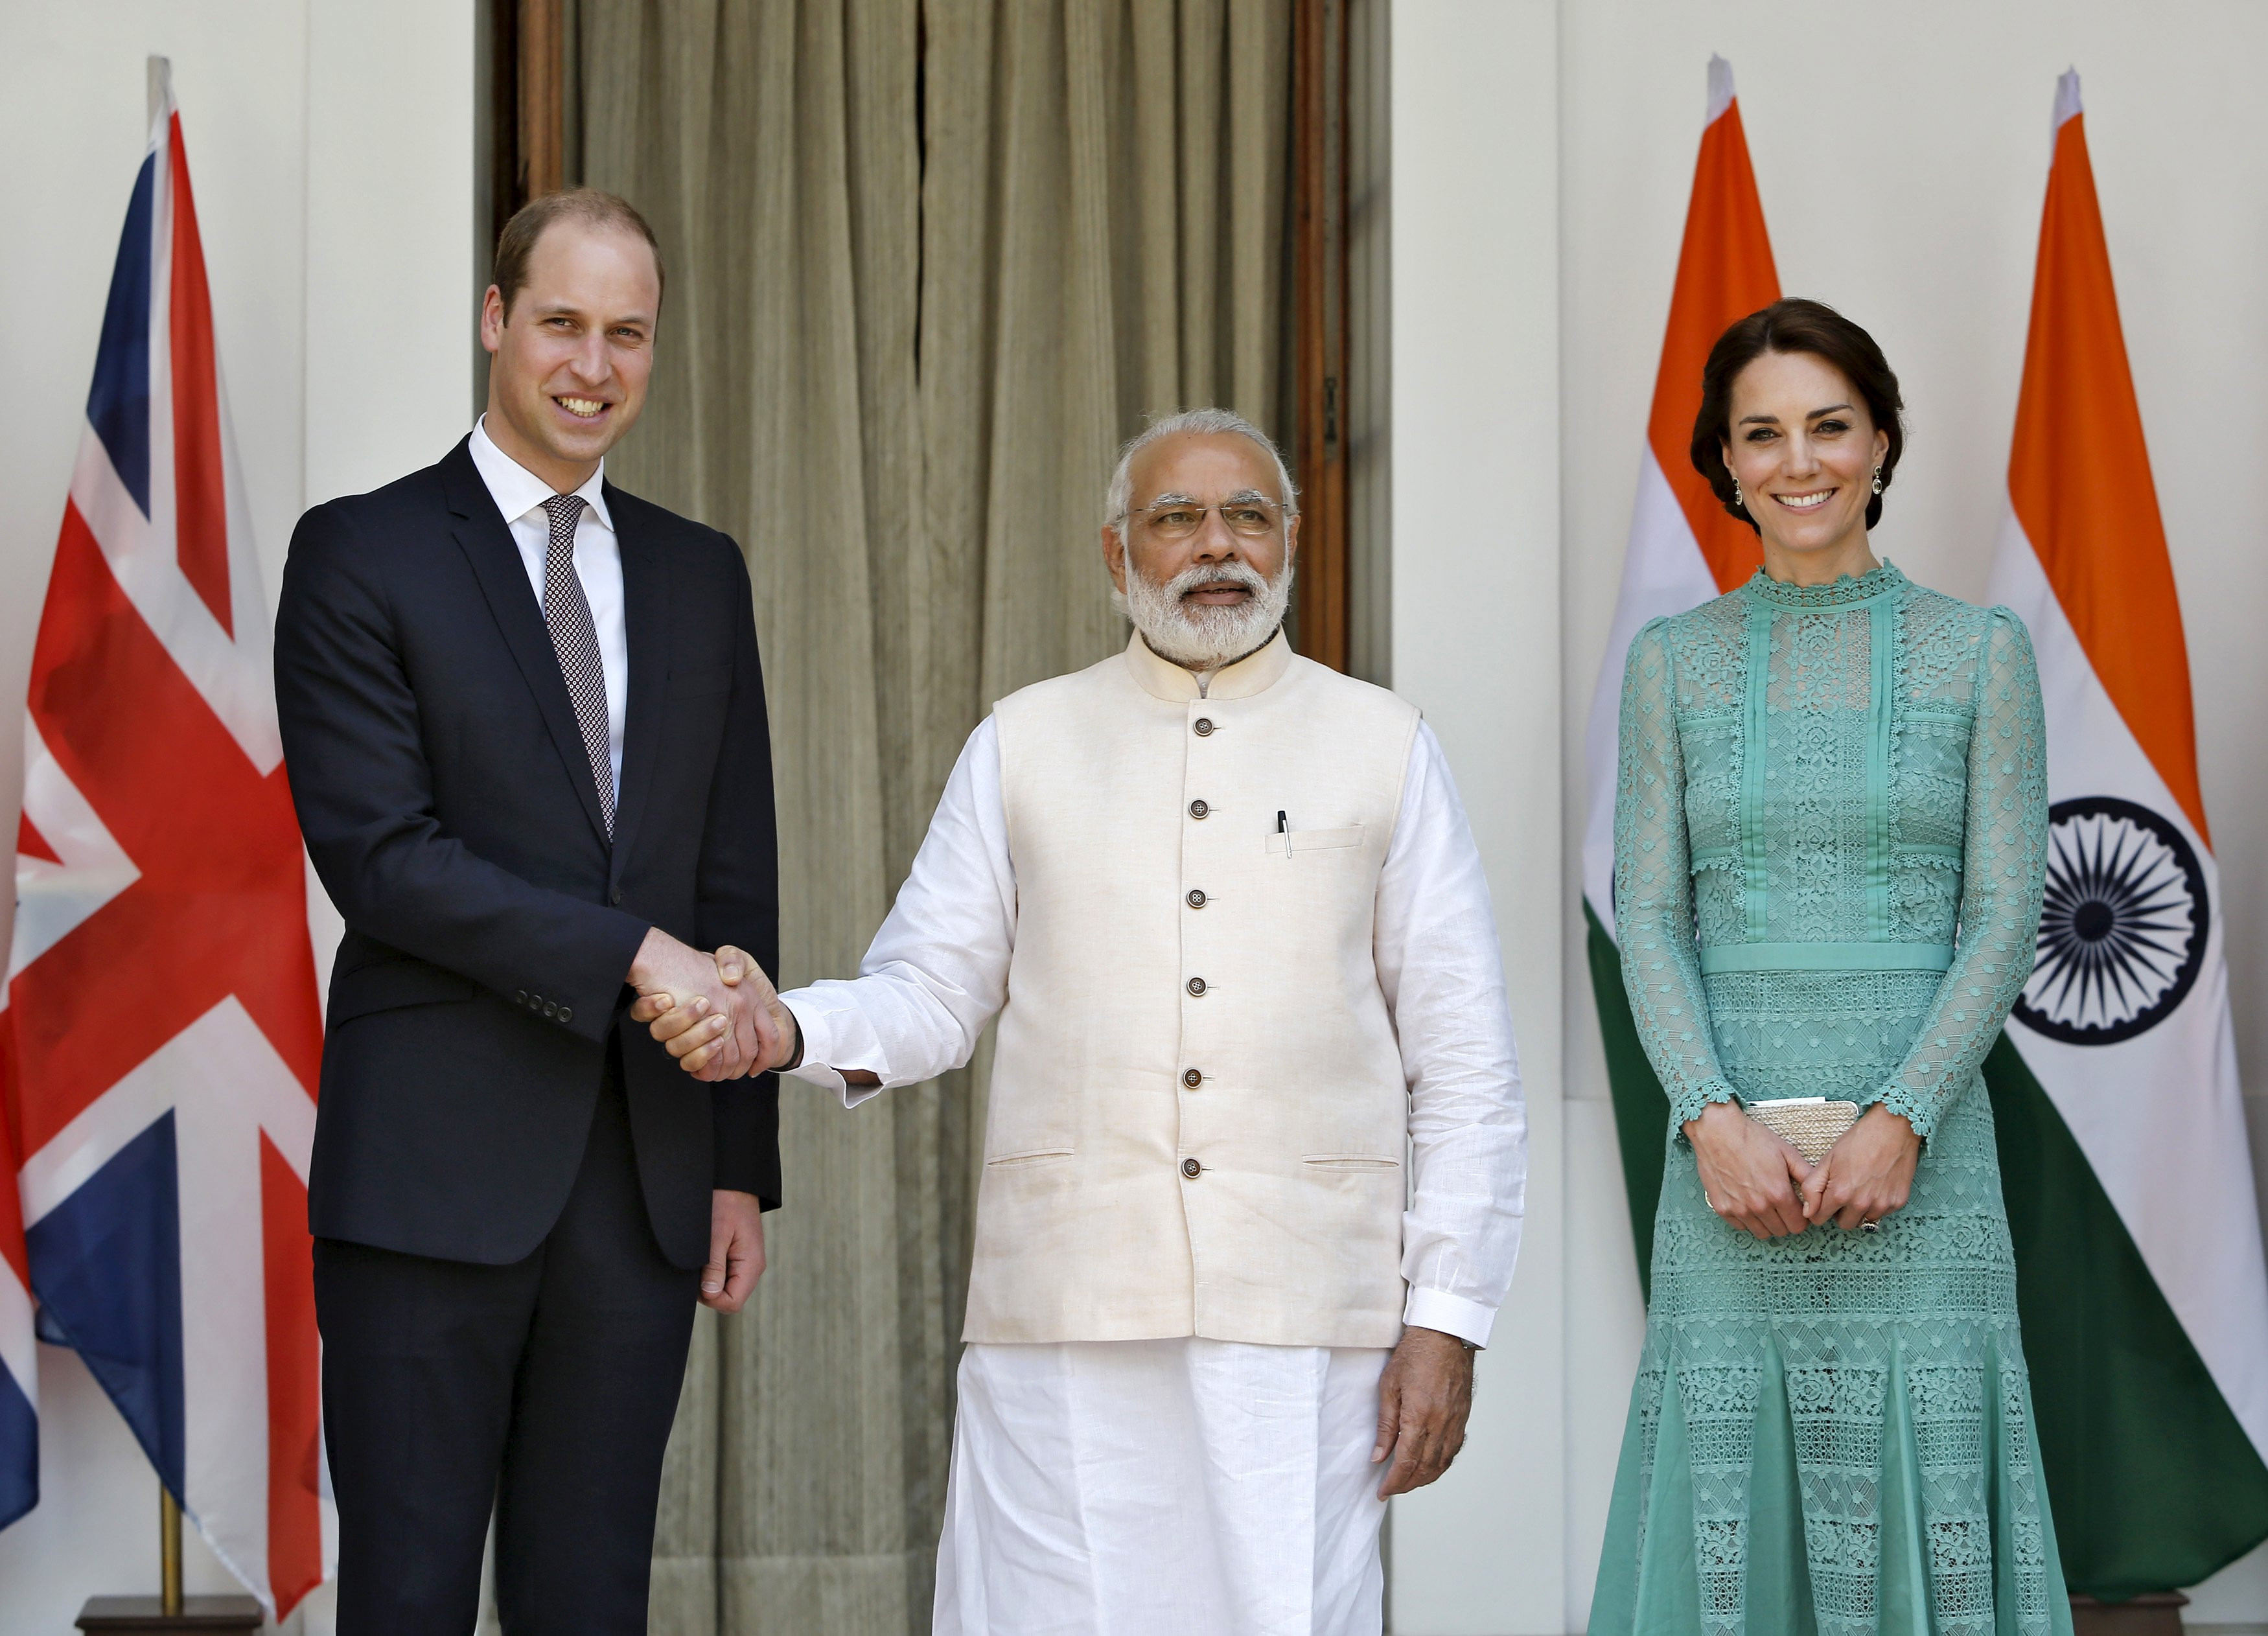 India's Modi hosts British royals for musical lunch